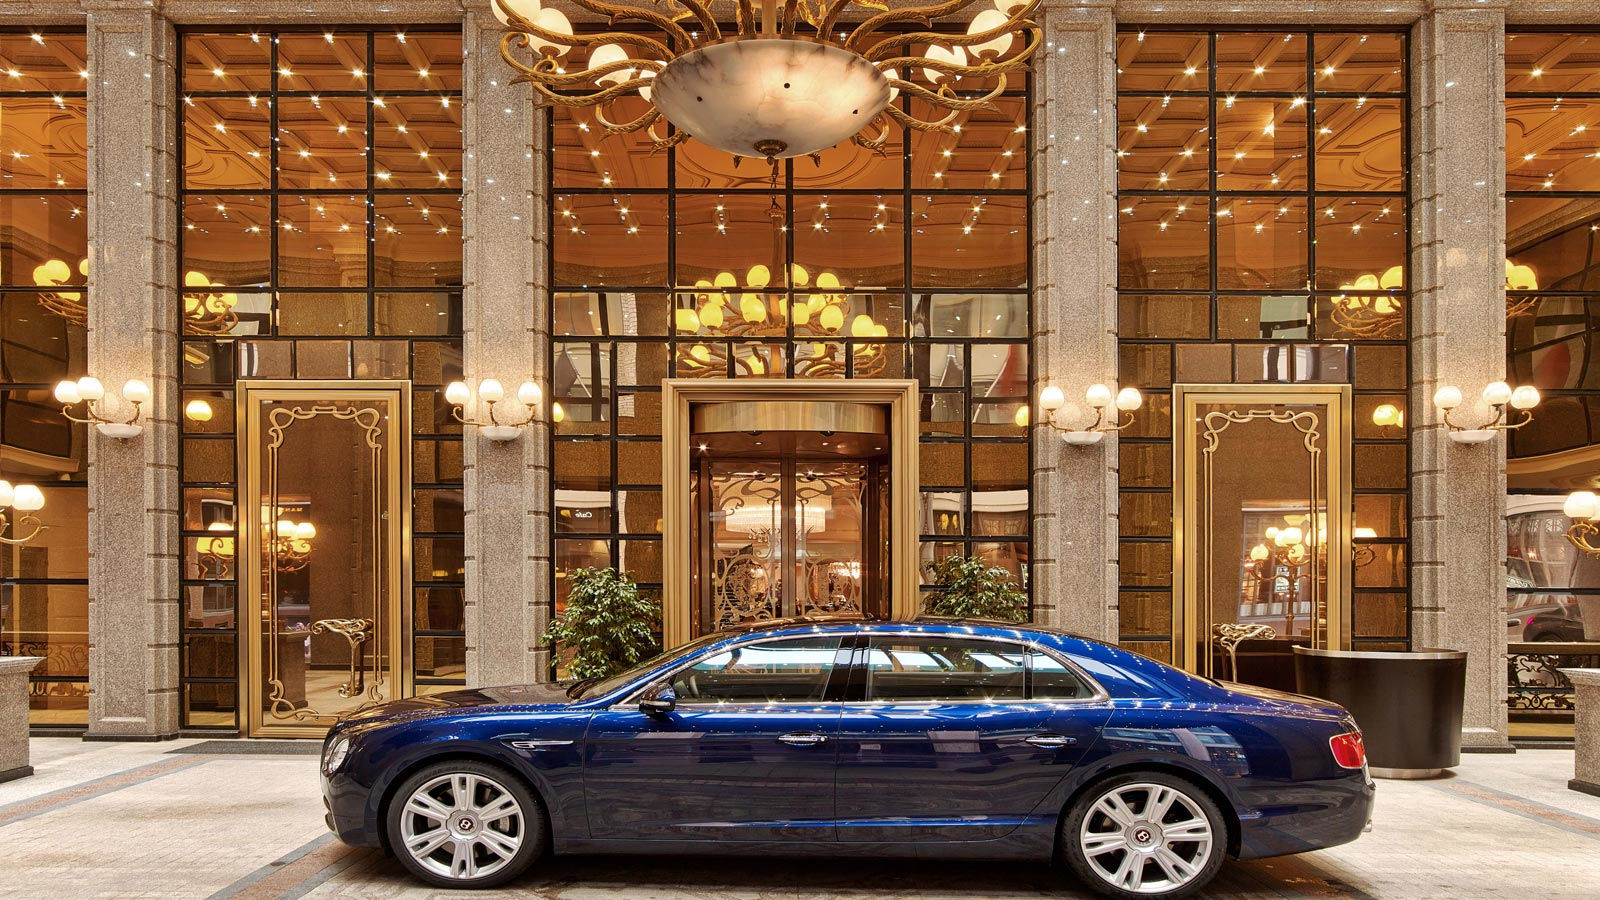 The St. Regis Moscow Nikolskaya, Bentley transfer